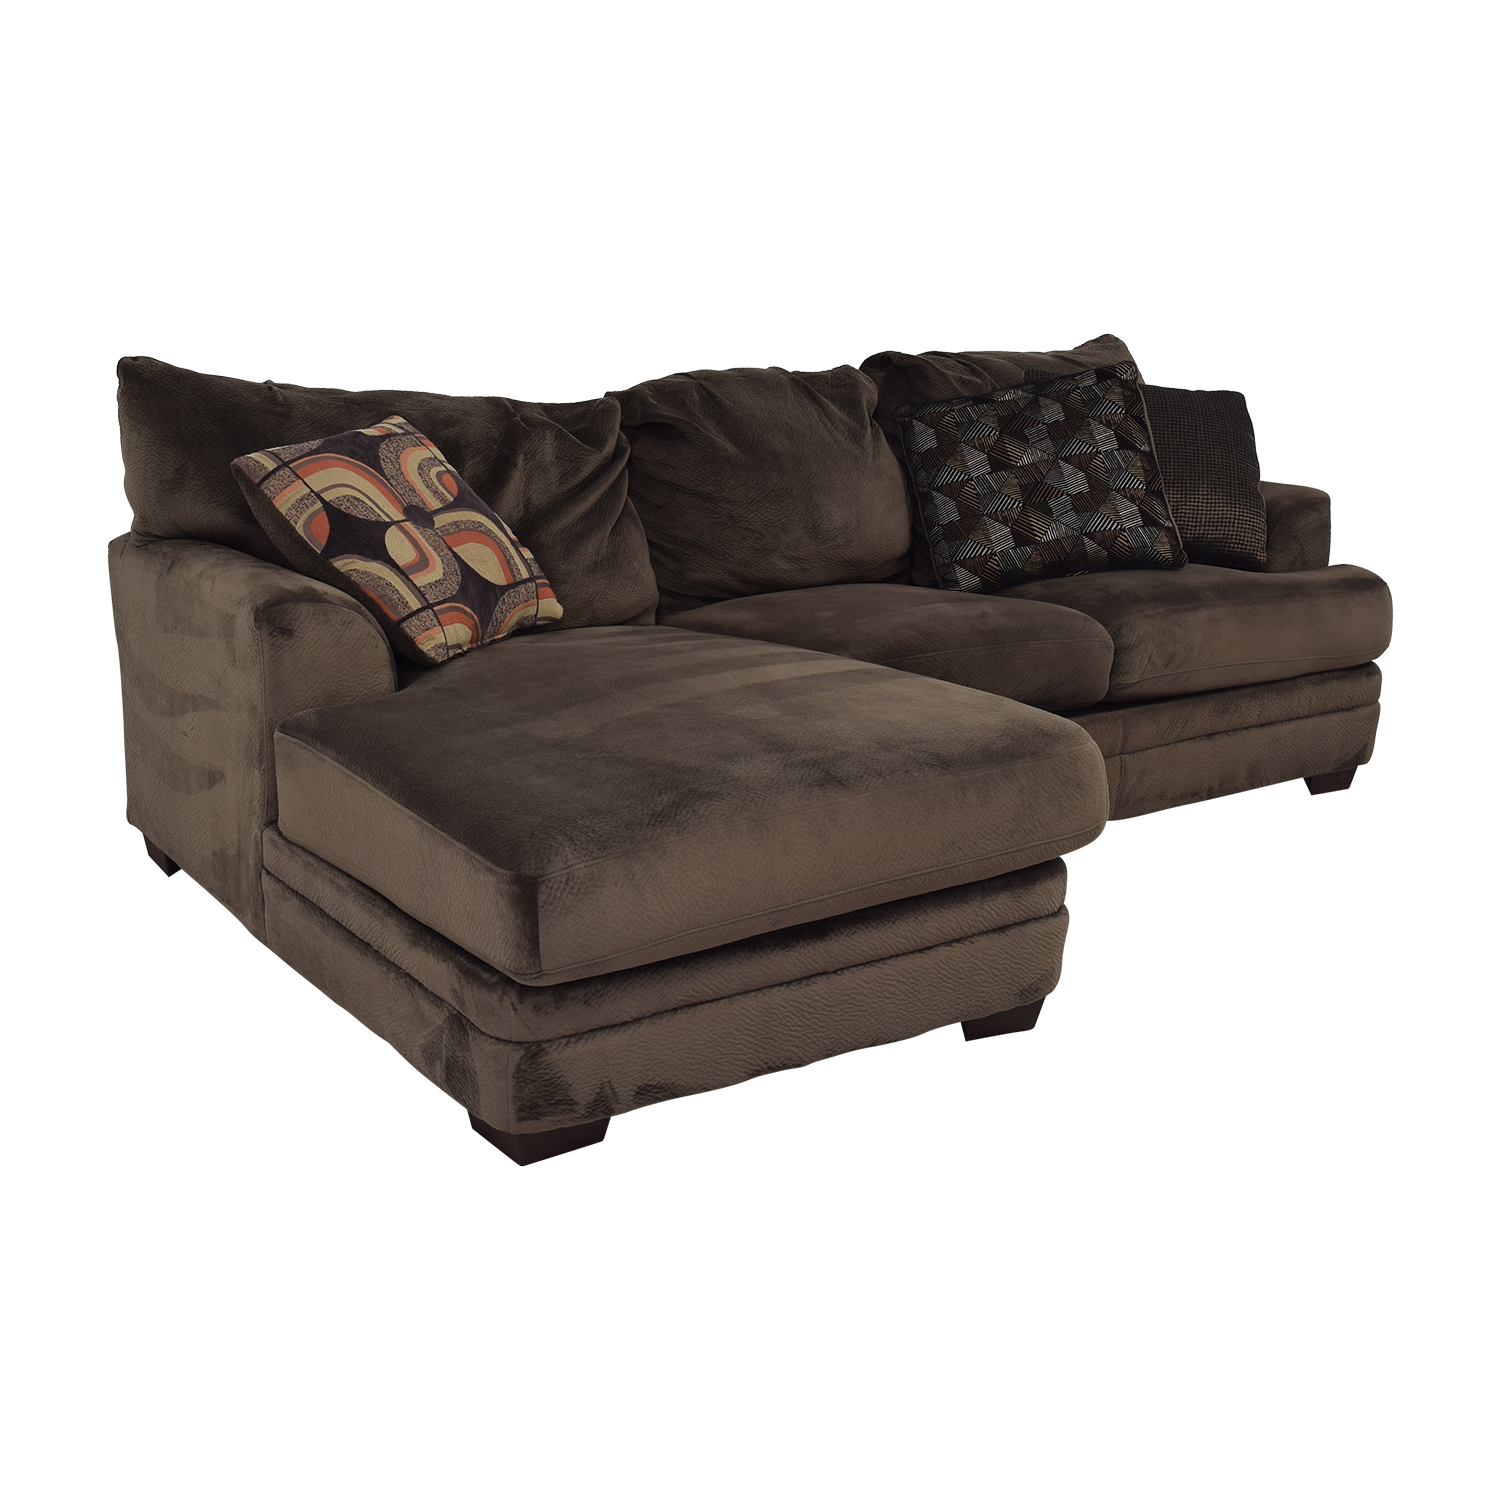 Superb 58 Off Macys Macys Mocha Sectional Couch Sofas Machost Co Dining Chair Design Ideas Machostcouk